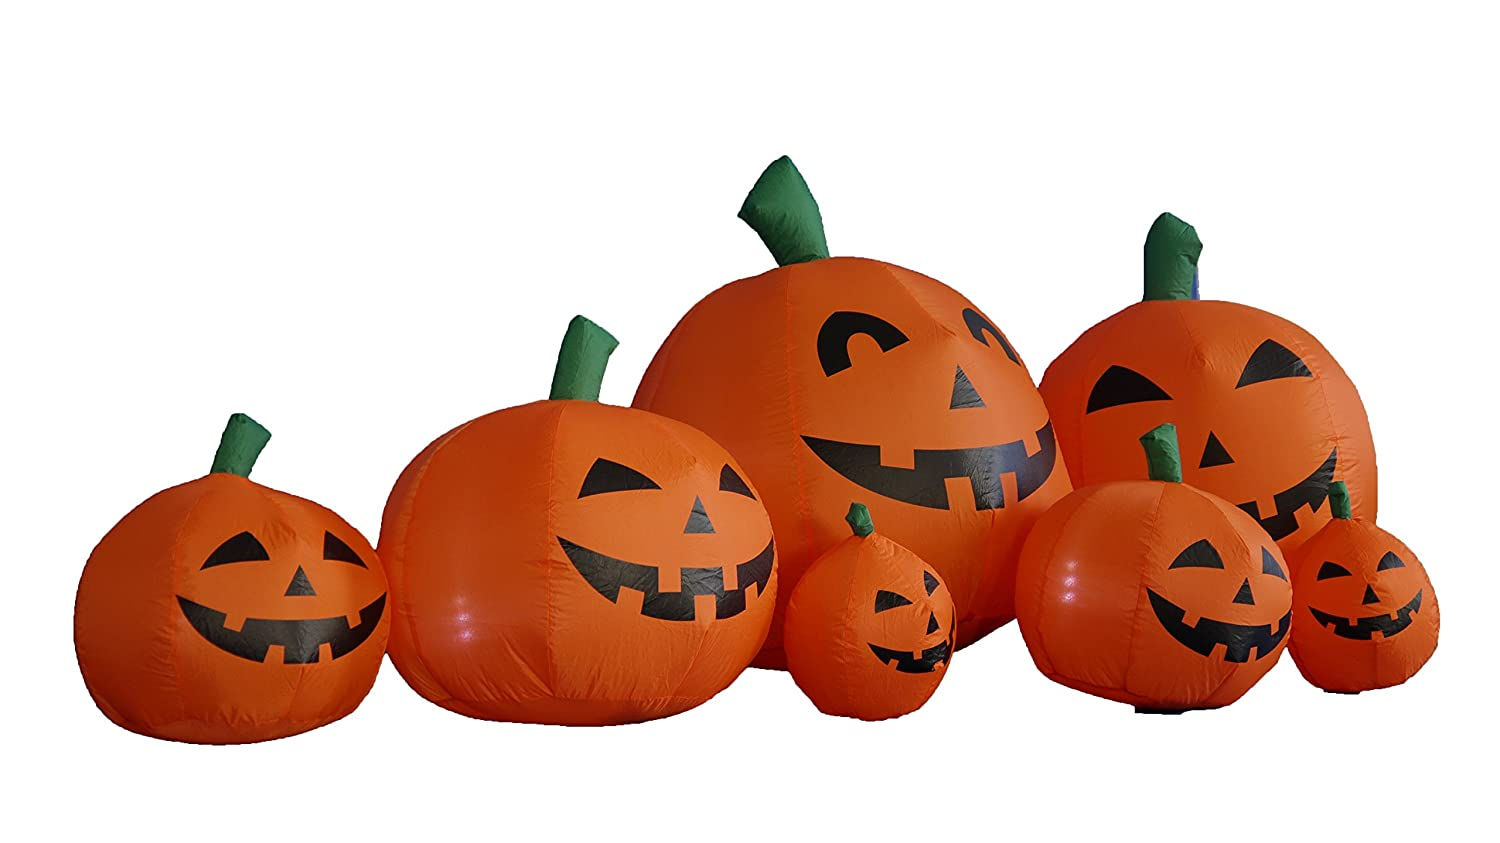 Amazon.com: 7.5 Foot Long Halloween Inflatable Pumpkins Yard ...